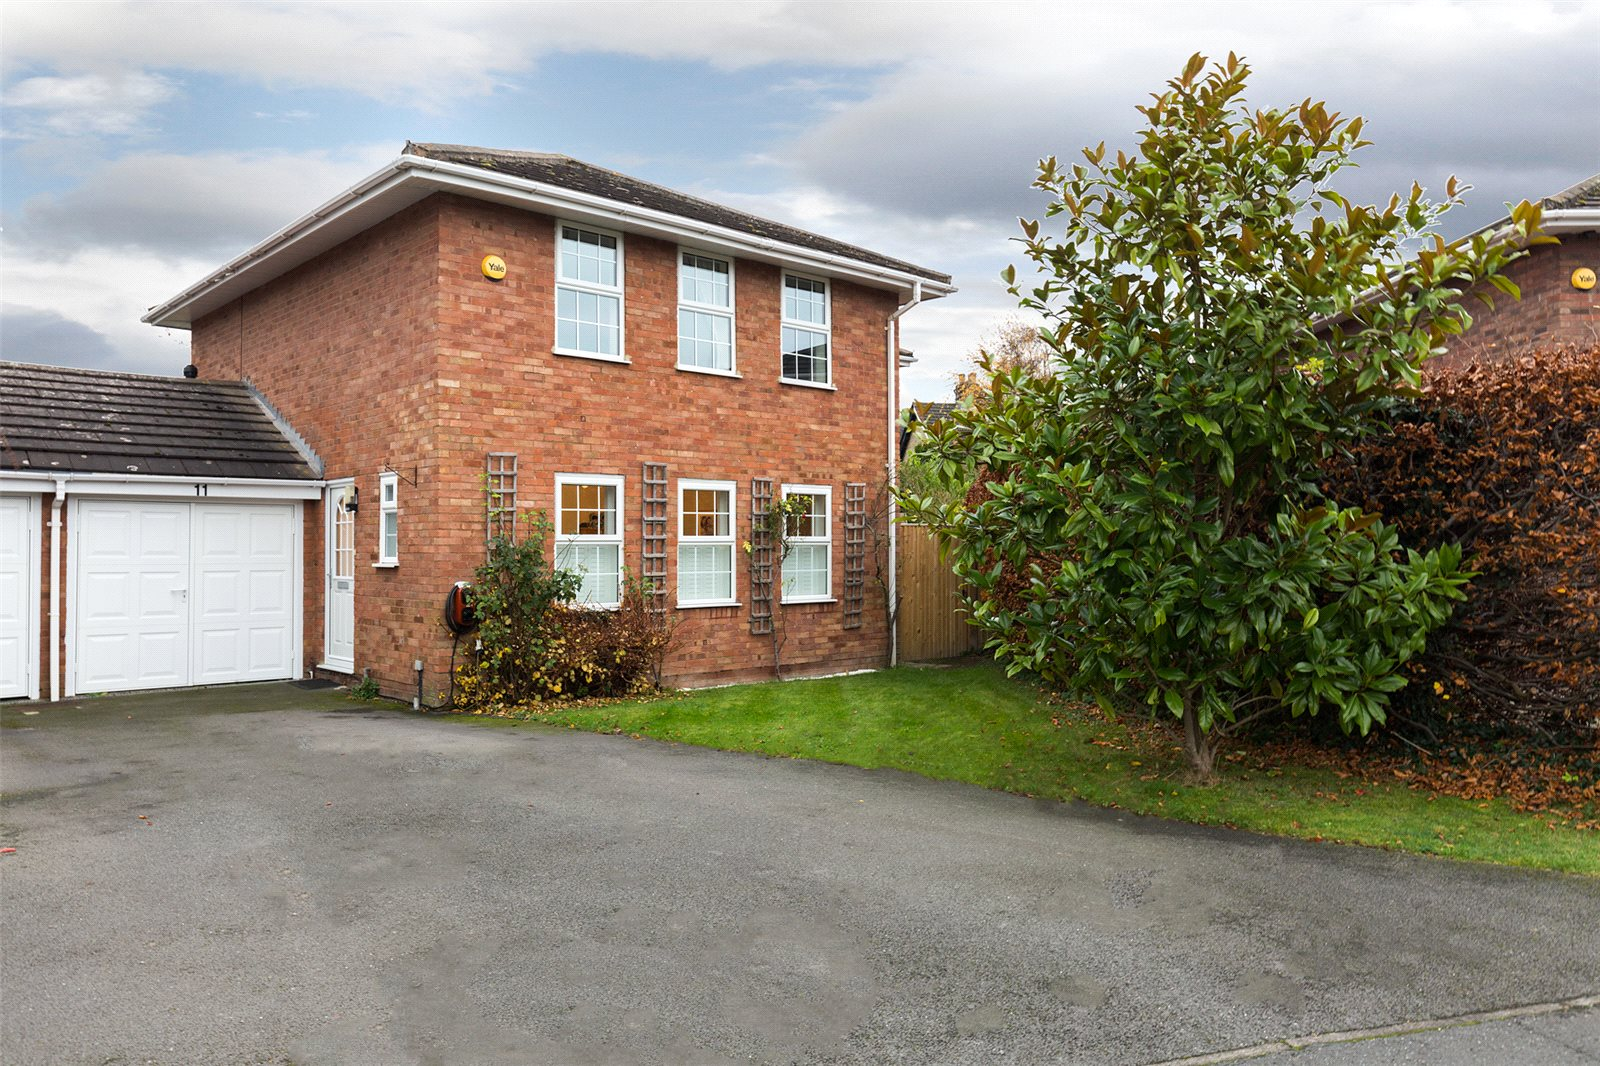 4 Bedrooms Link Detached House for sale in Millside, Bourne End, Buckinghamshire, SL8